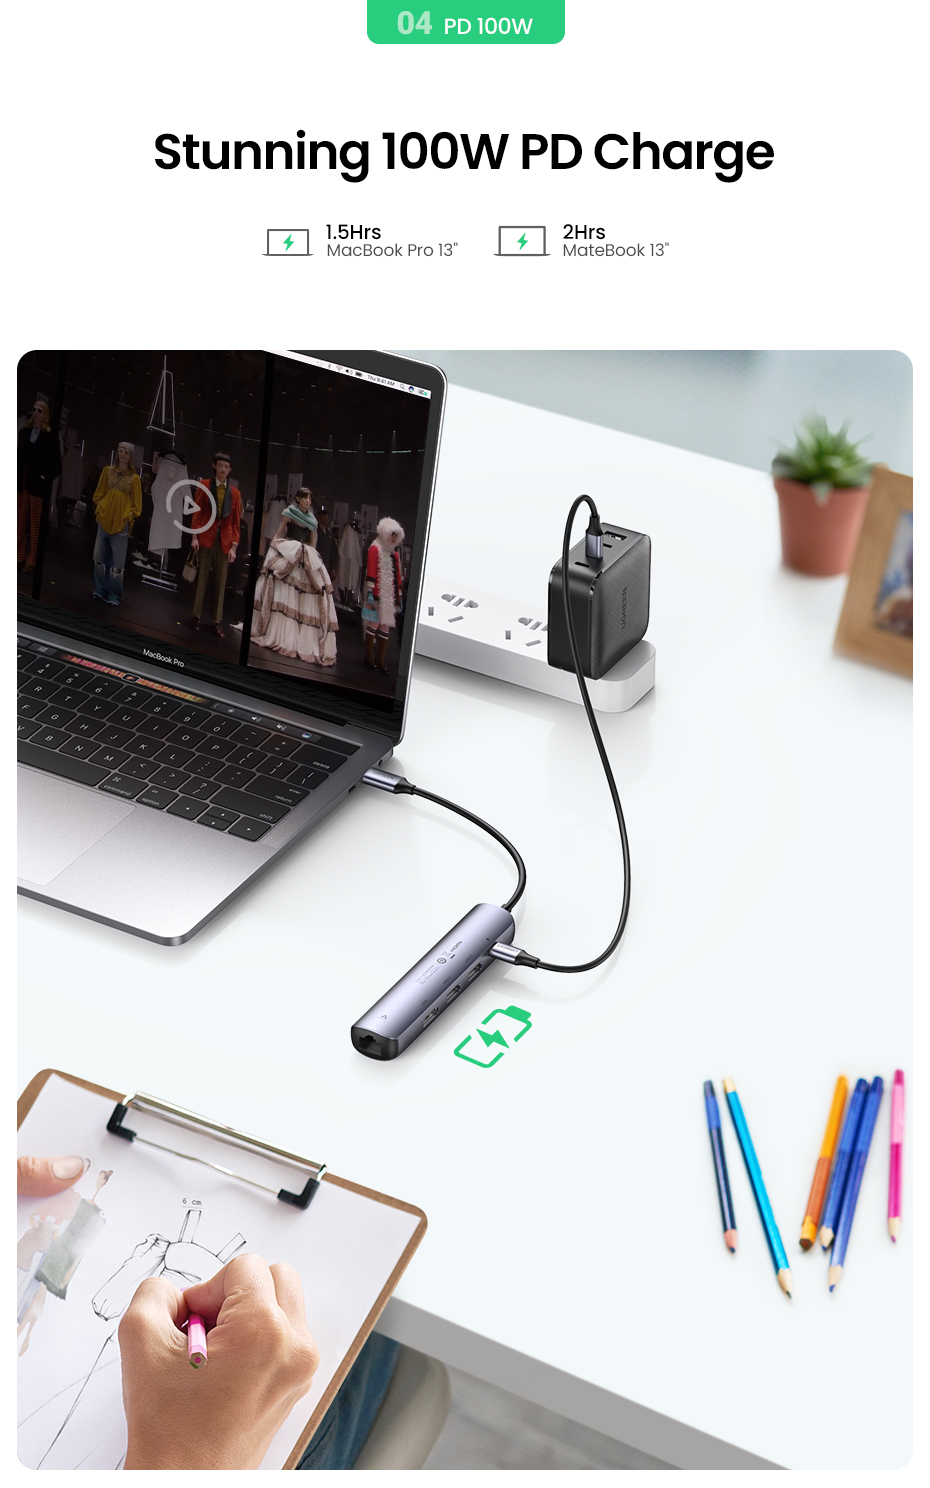 UGREEN USB C Hub Mini Size USB Type C 3.1 to 4K HDMI RJ45 USB 3.0 Adapter USB C Dock for MacBook Pro MacBook Air 2020 PC USB HUB